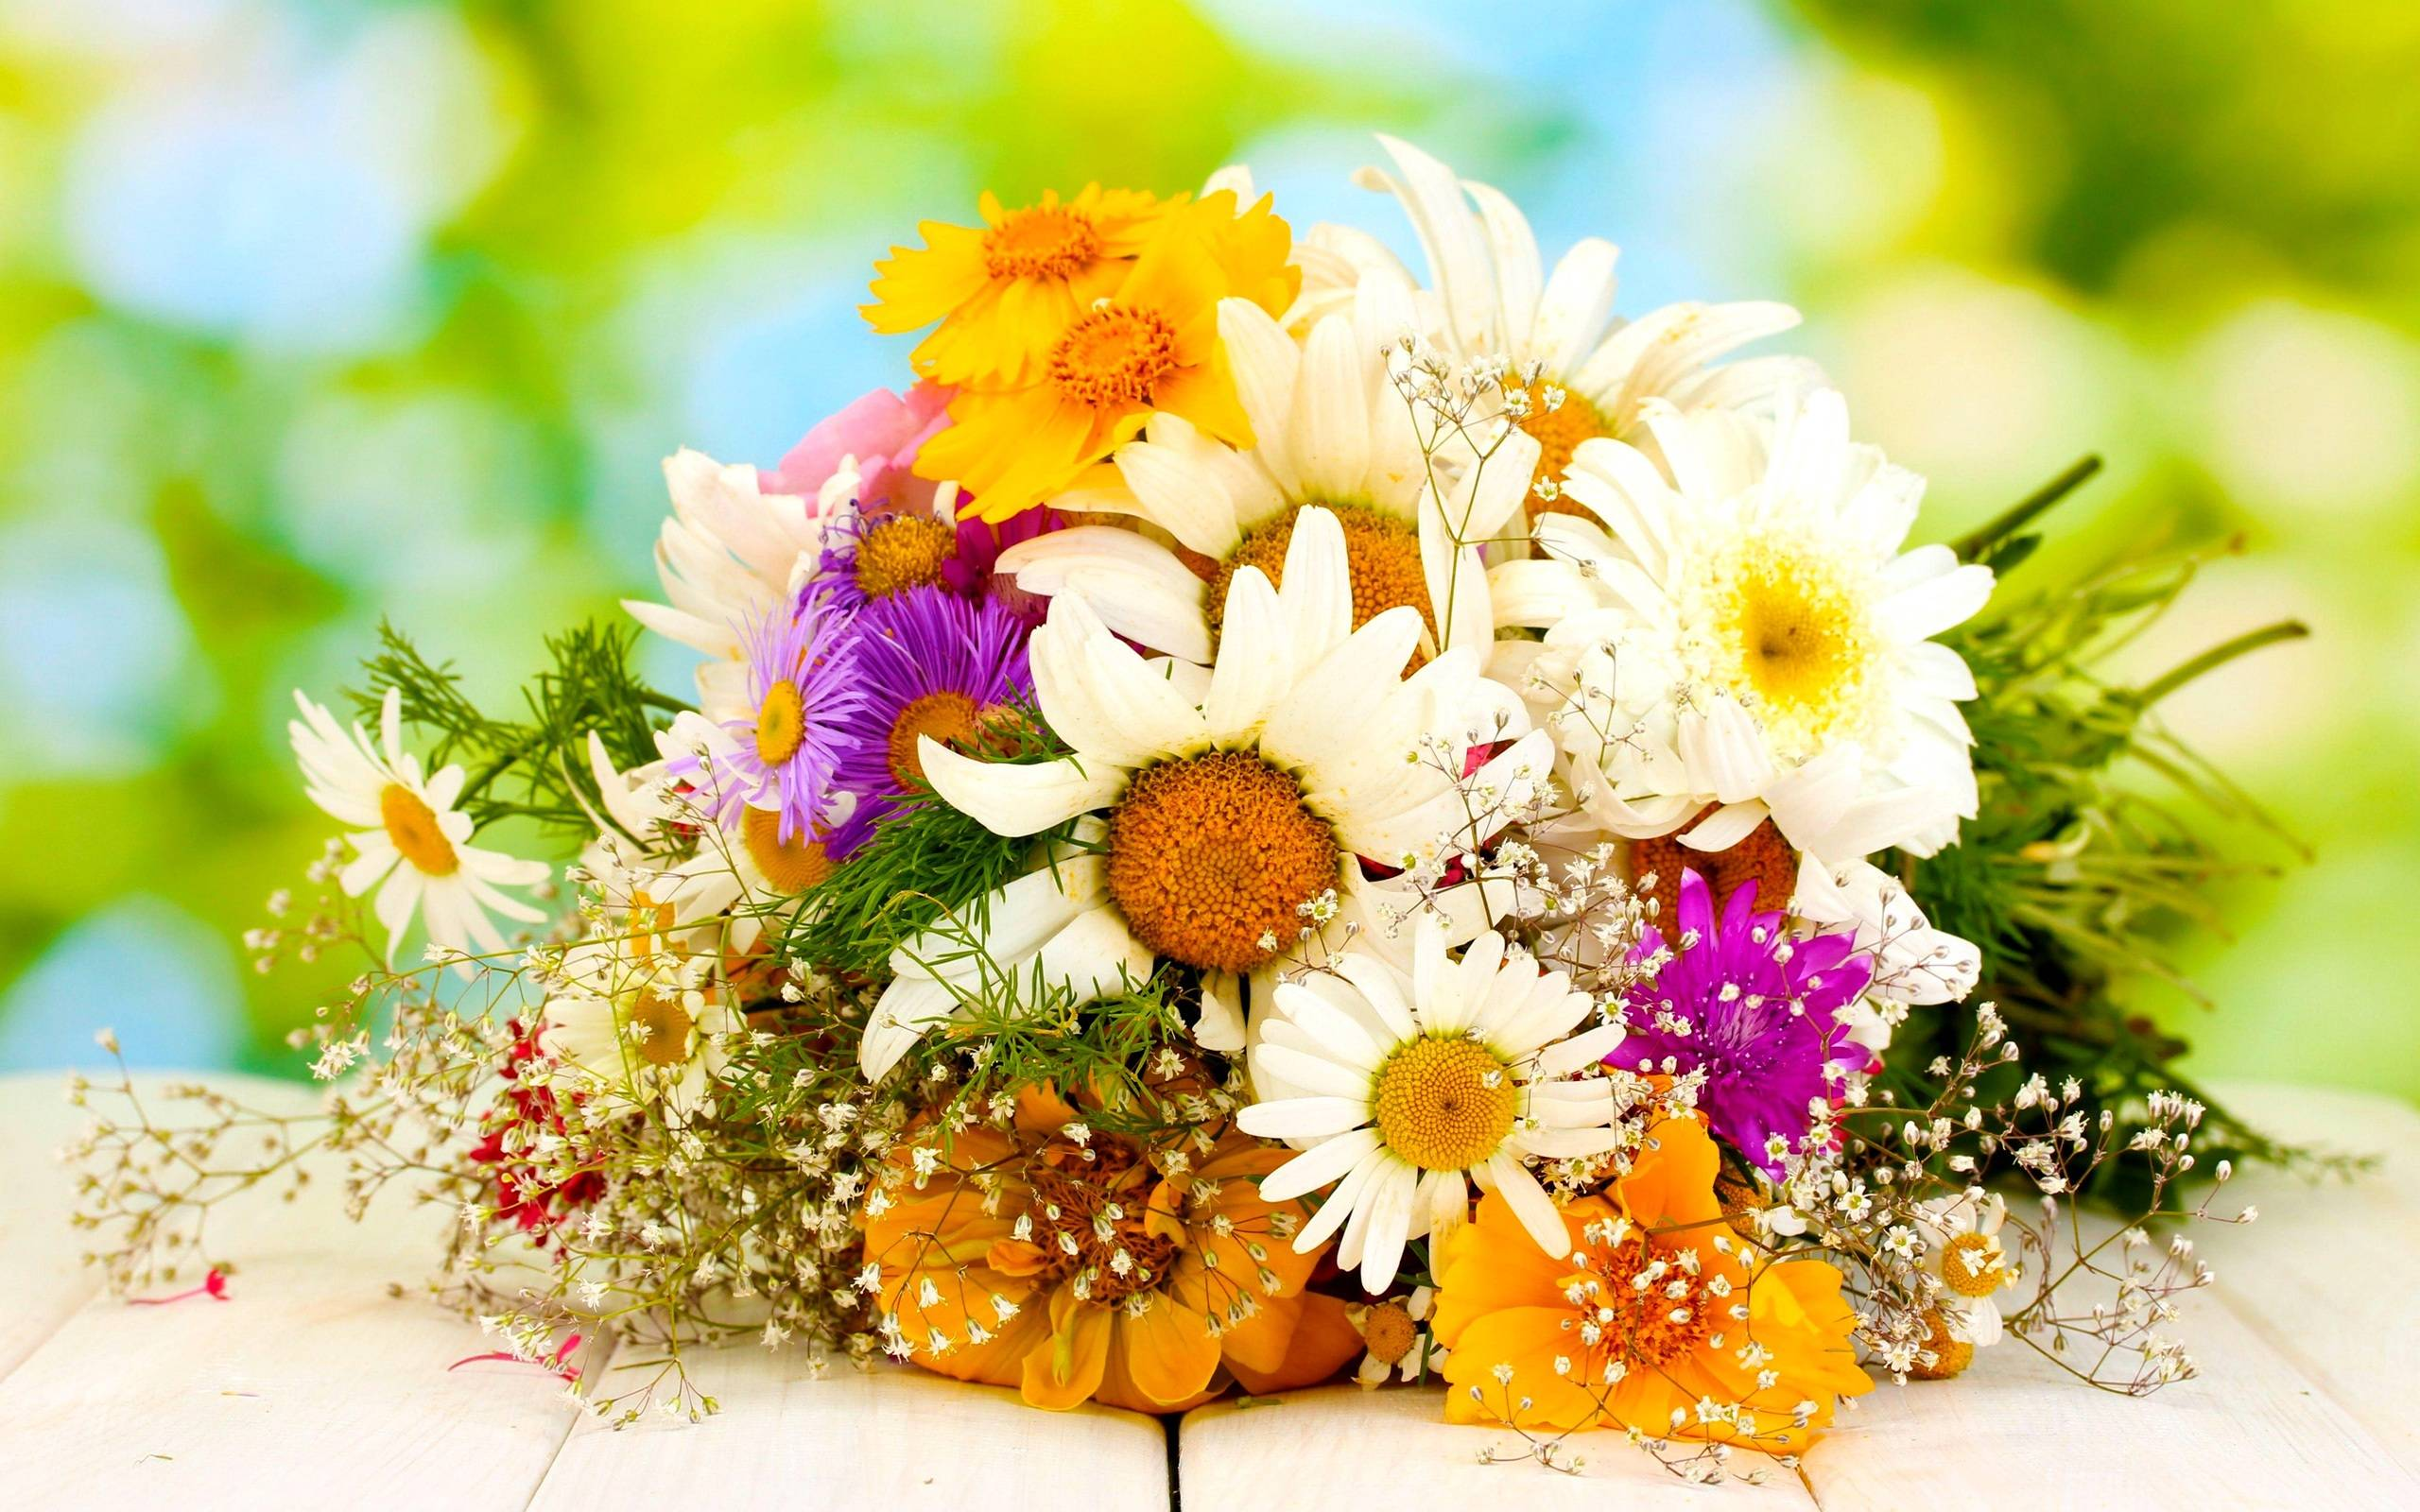 Flower Bouquet Wallpapers - Wallpaper Cave